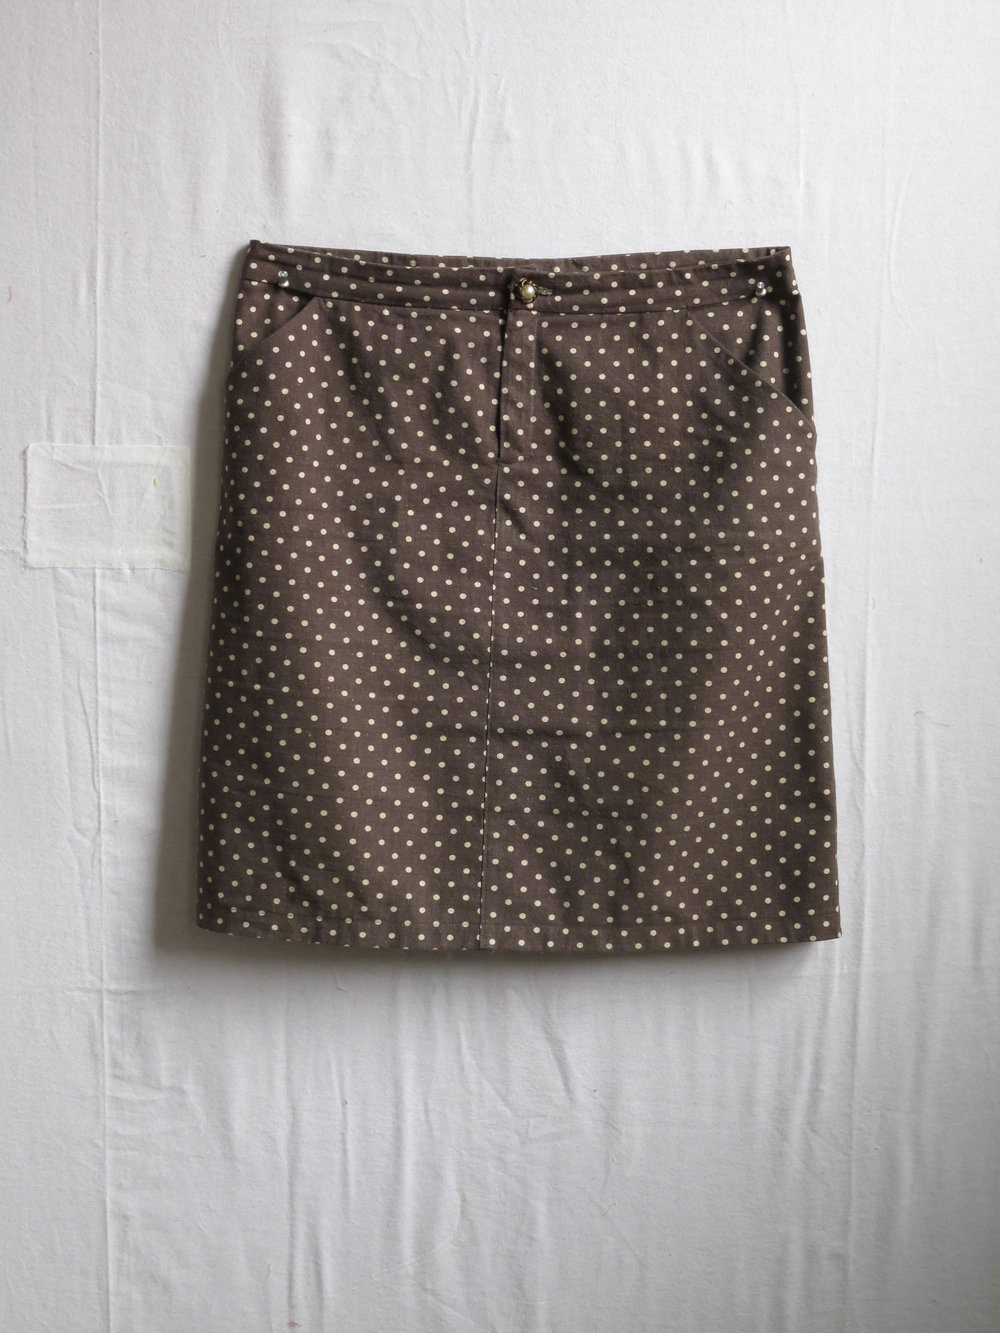 A Moss skirt, pattern by Jen Beeman of Grainline Studio, in Linen/cotton blend from....(?)